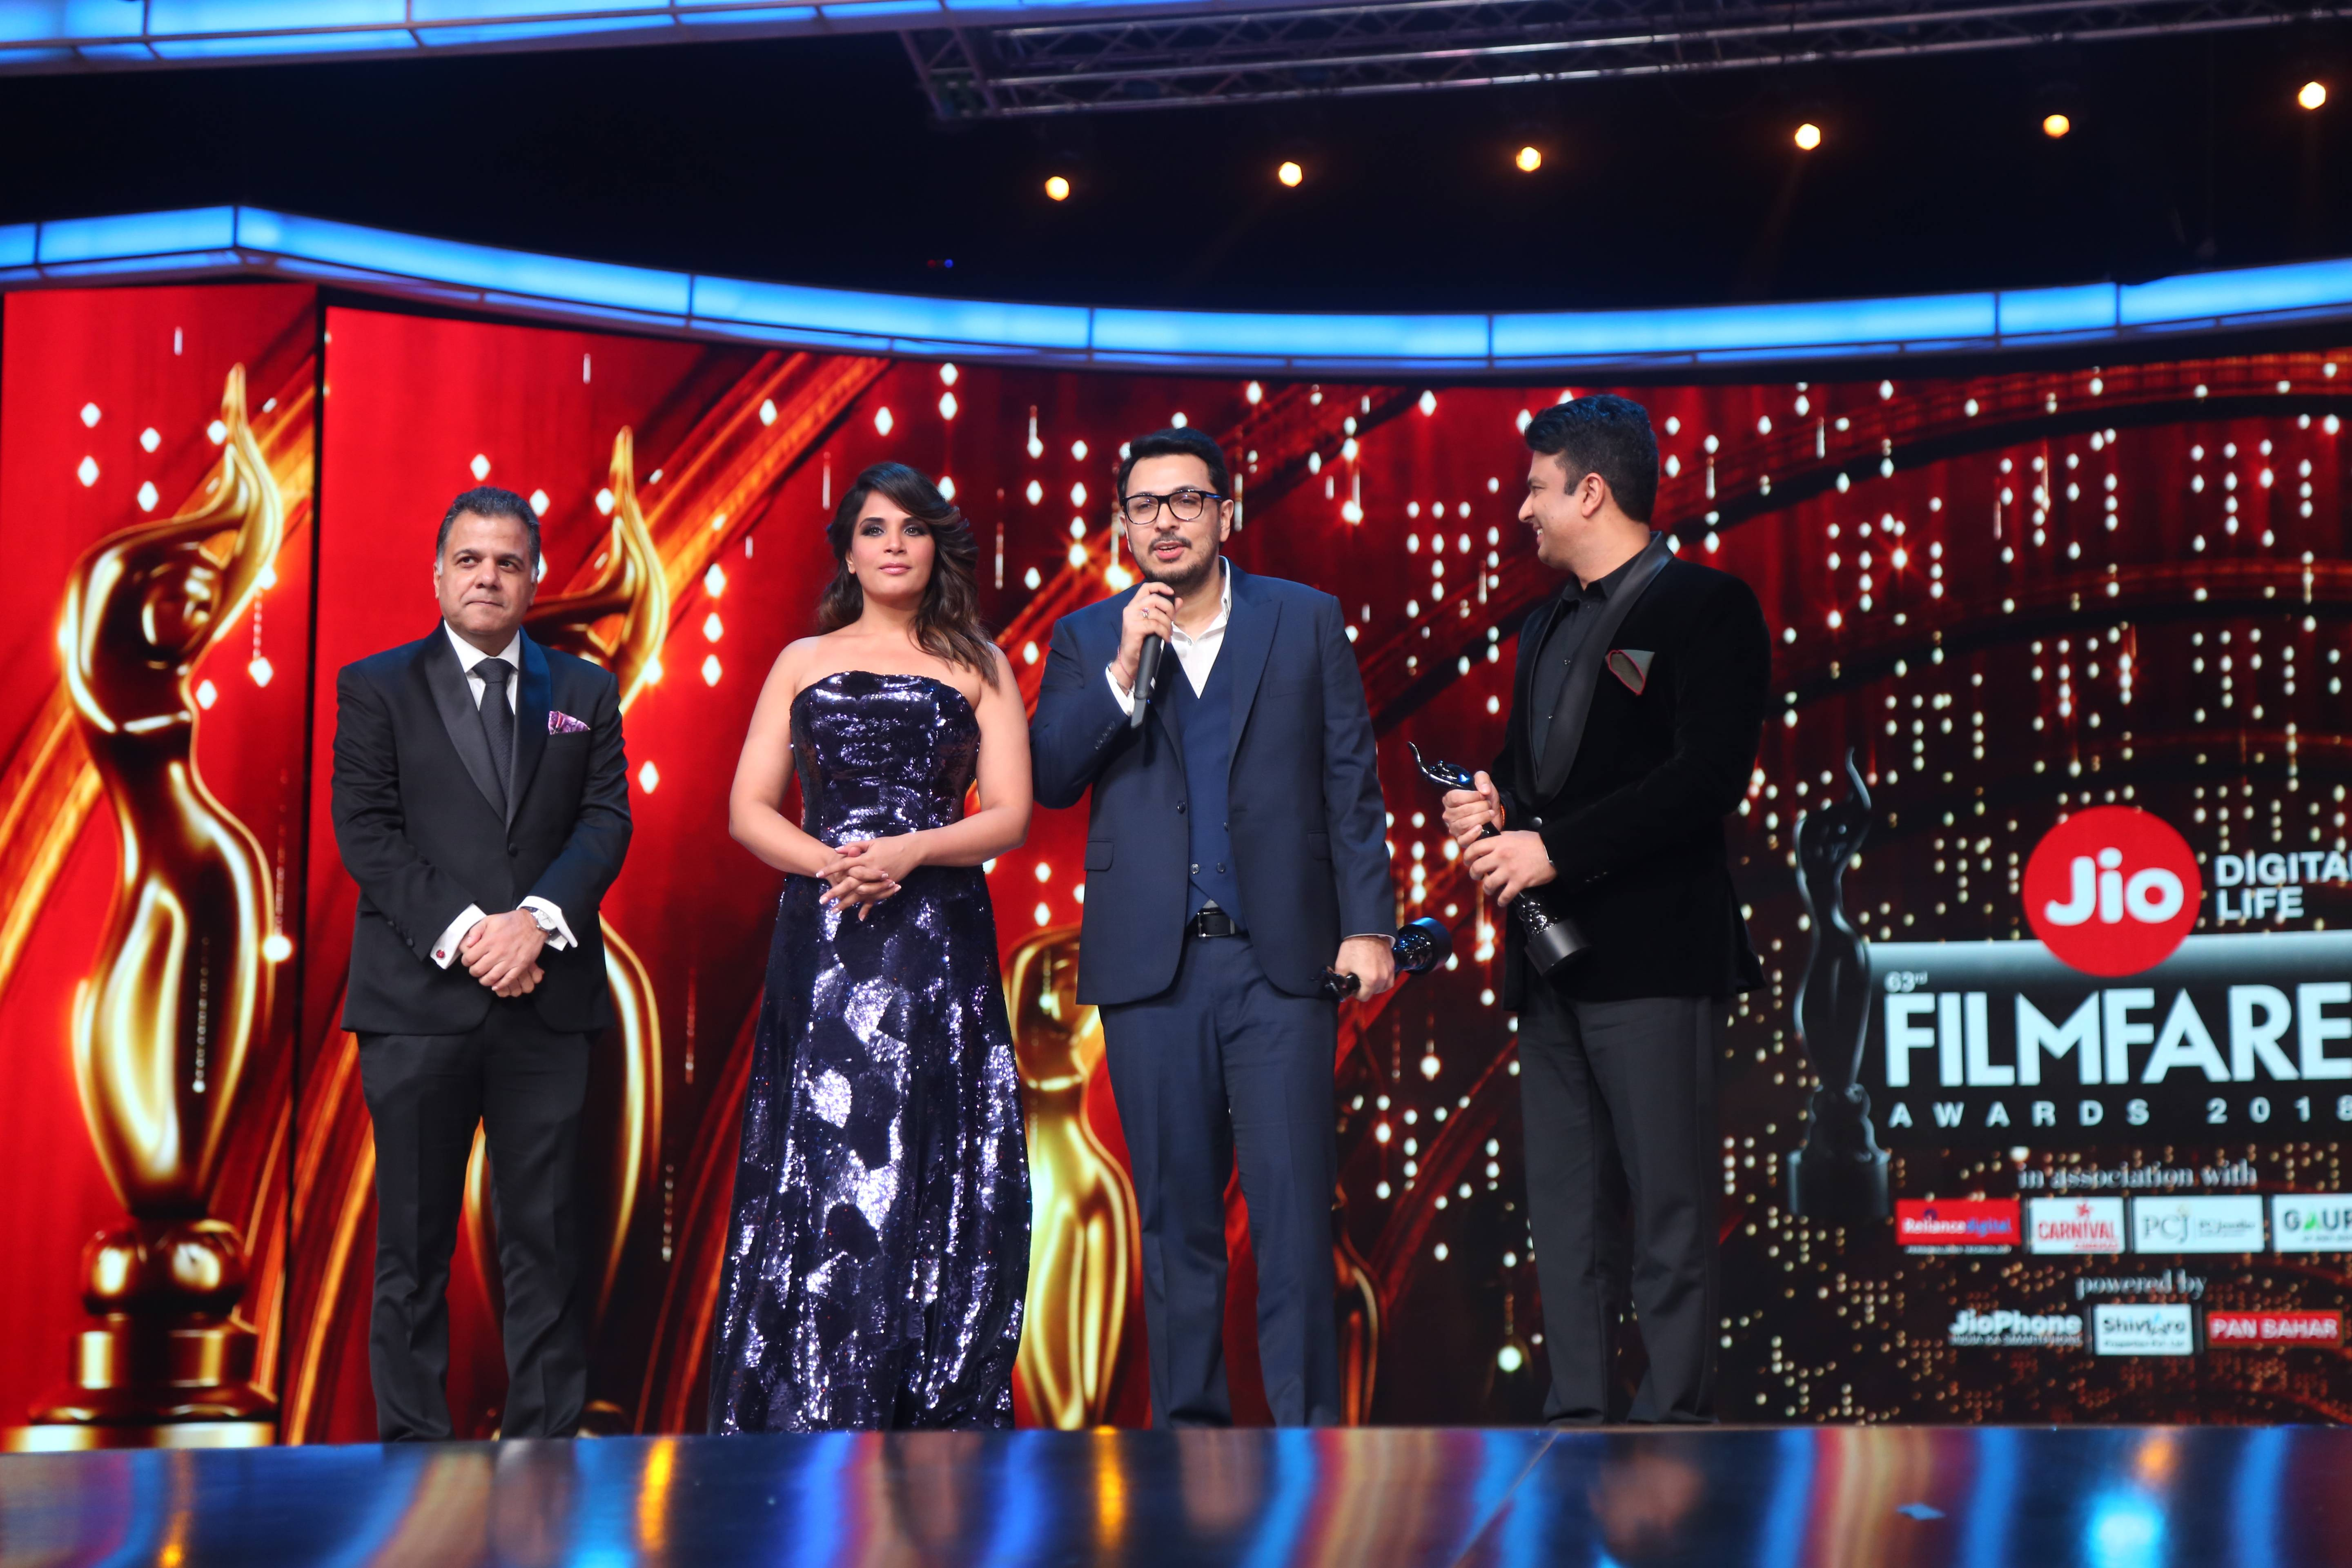 Jio Filmfare Awards 2018: Special moments!